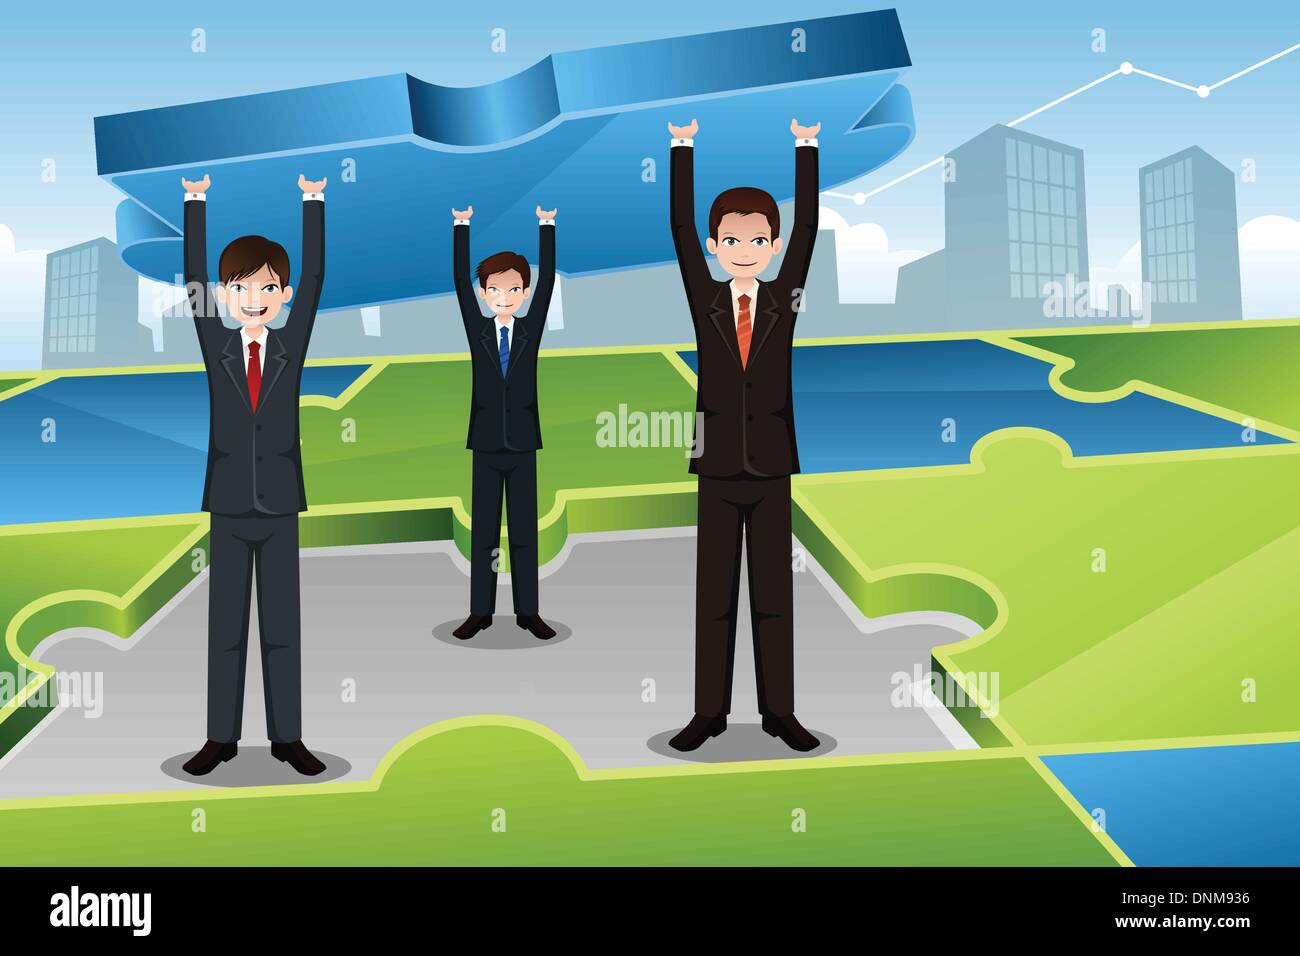 A vector illustration of businessmen carrying big puzzle together for business teamwork concept - Stock Image